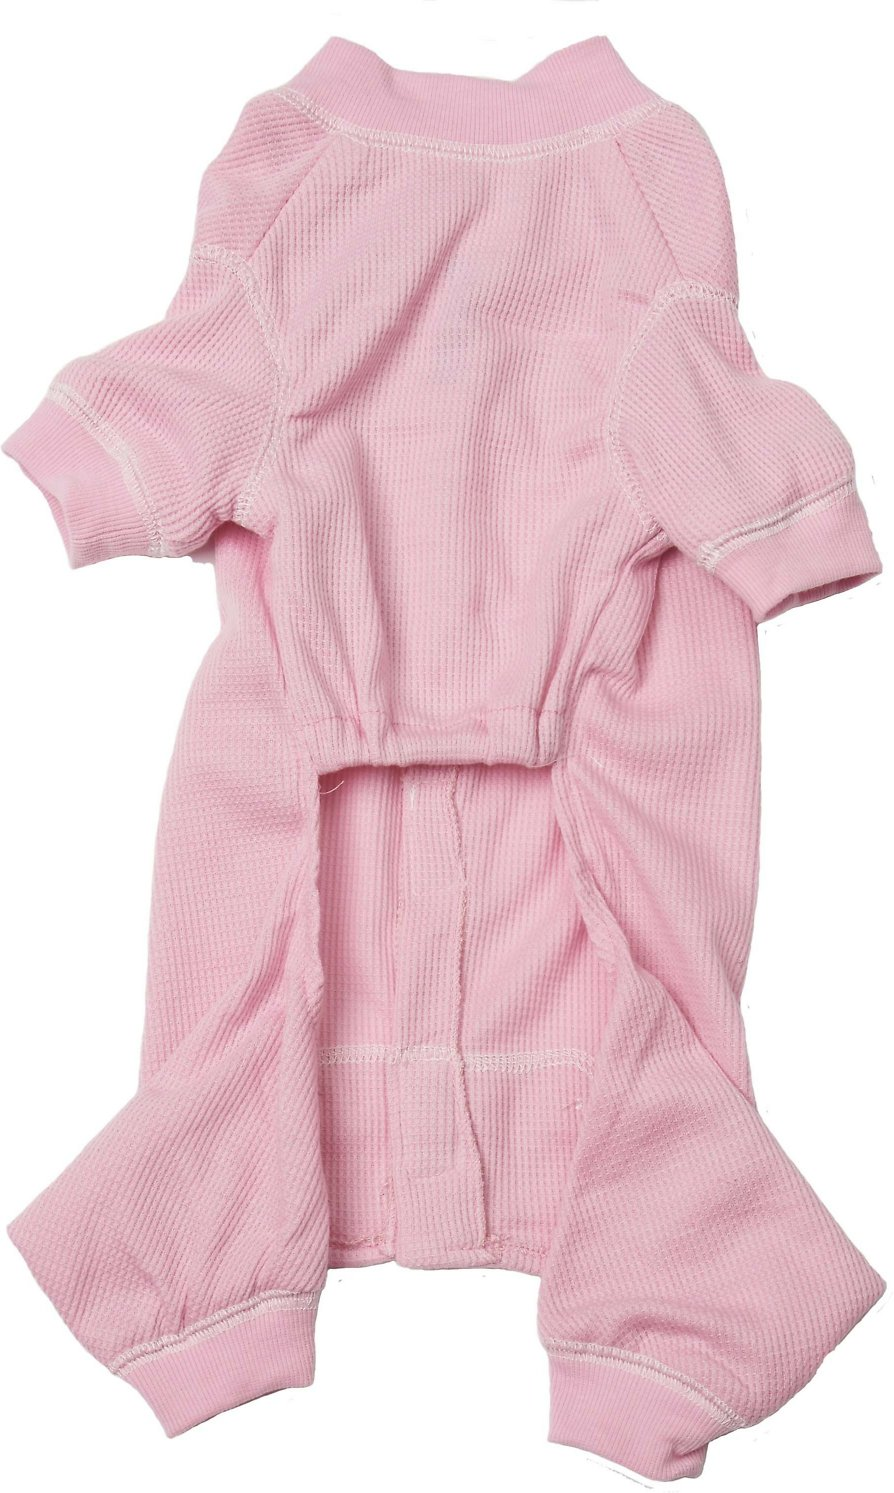 Petrageous designs cozy thermal dog pjs pink medium chewy video nvjuhfo Images